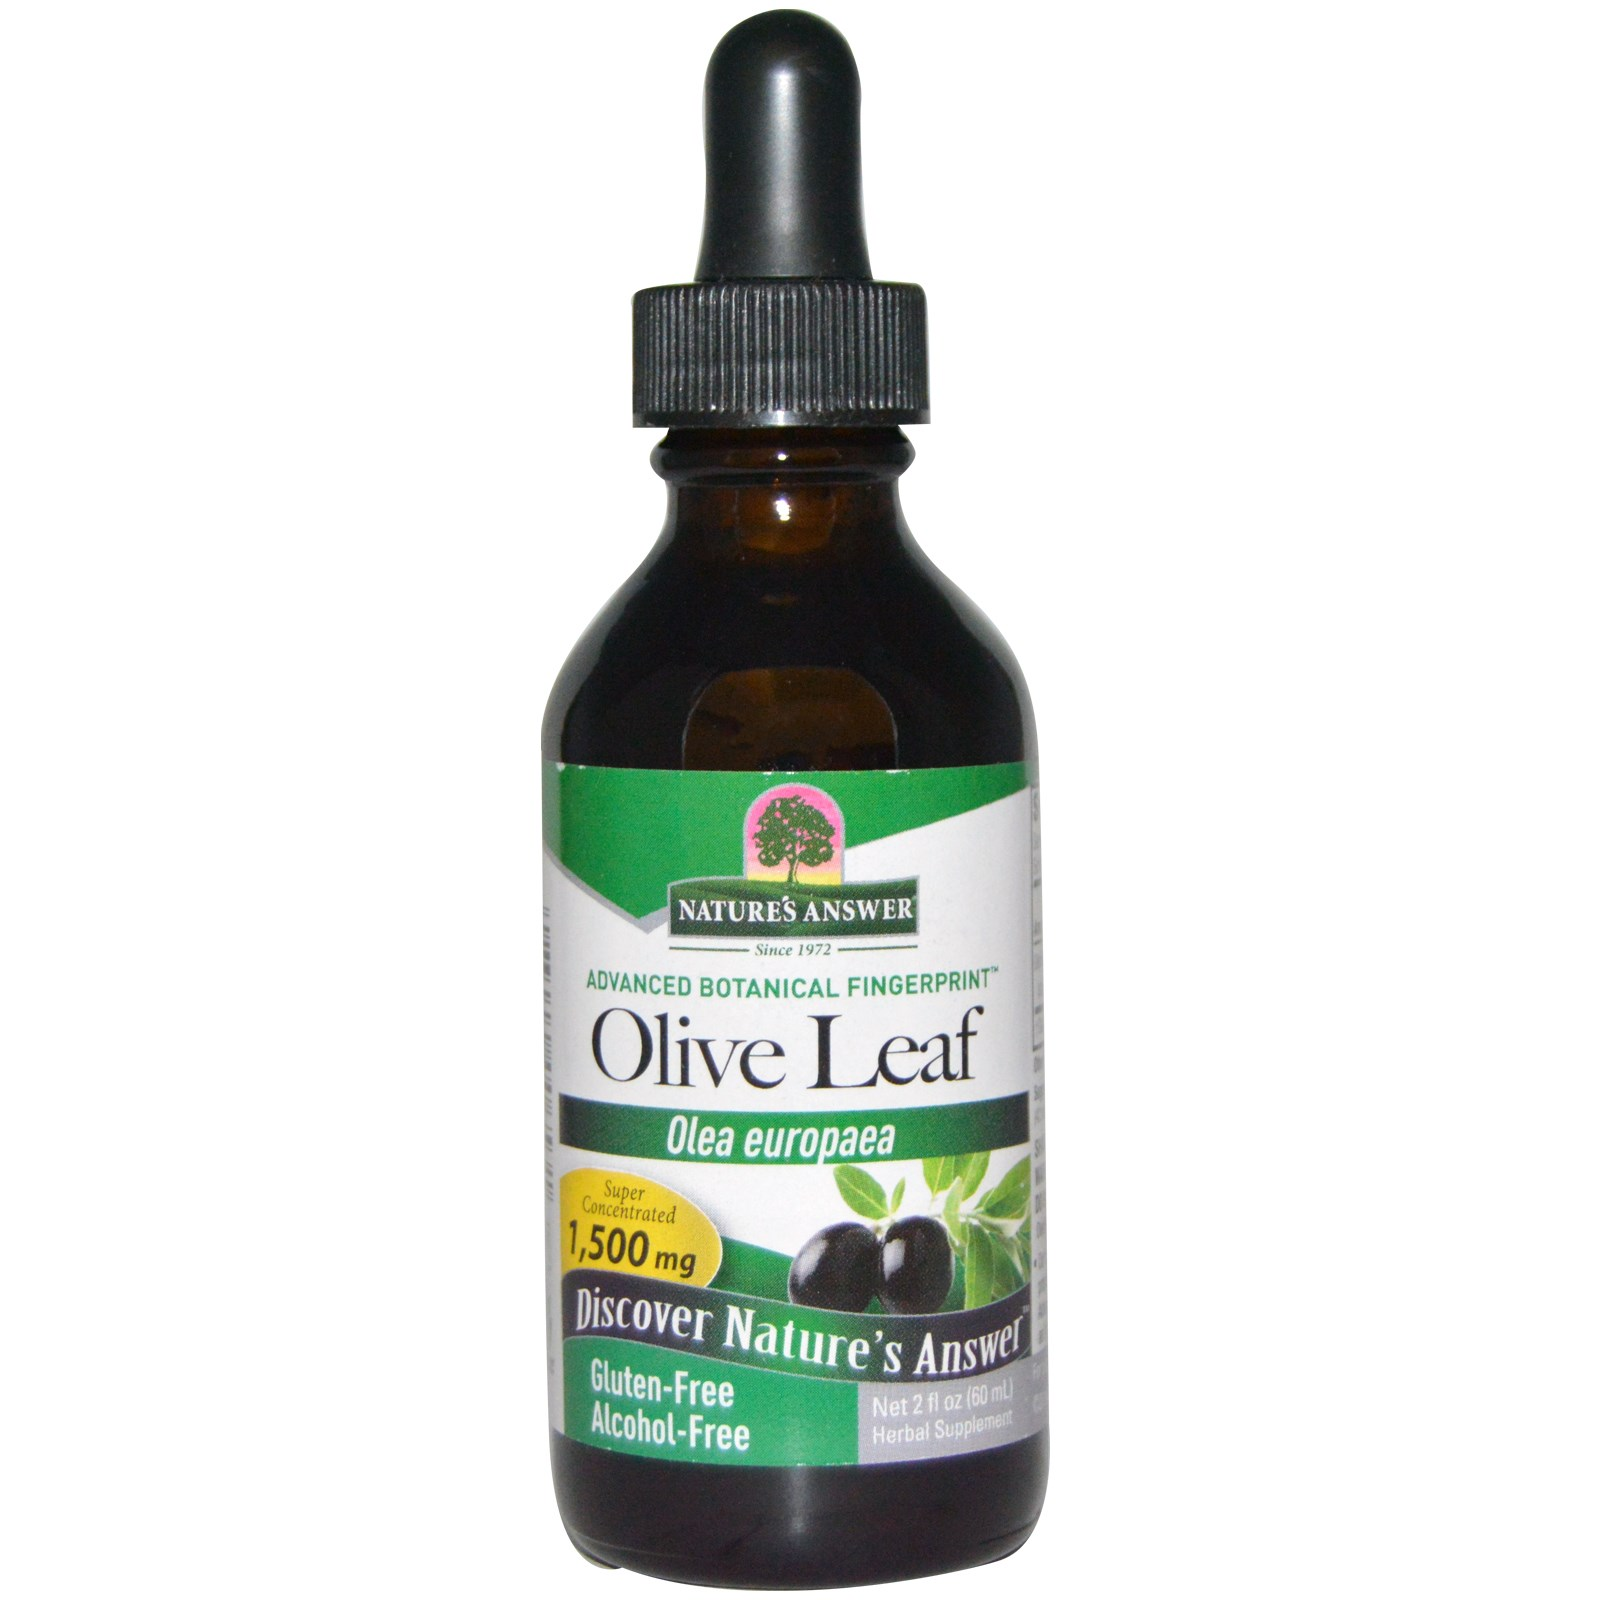 Image of Olive Leaf, Alcohol-Free, 1500 mg (60 ml) - Nature's Answer 0083000006531